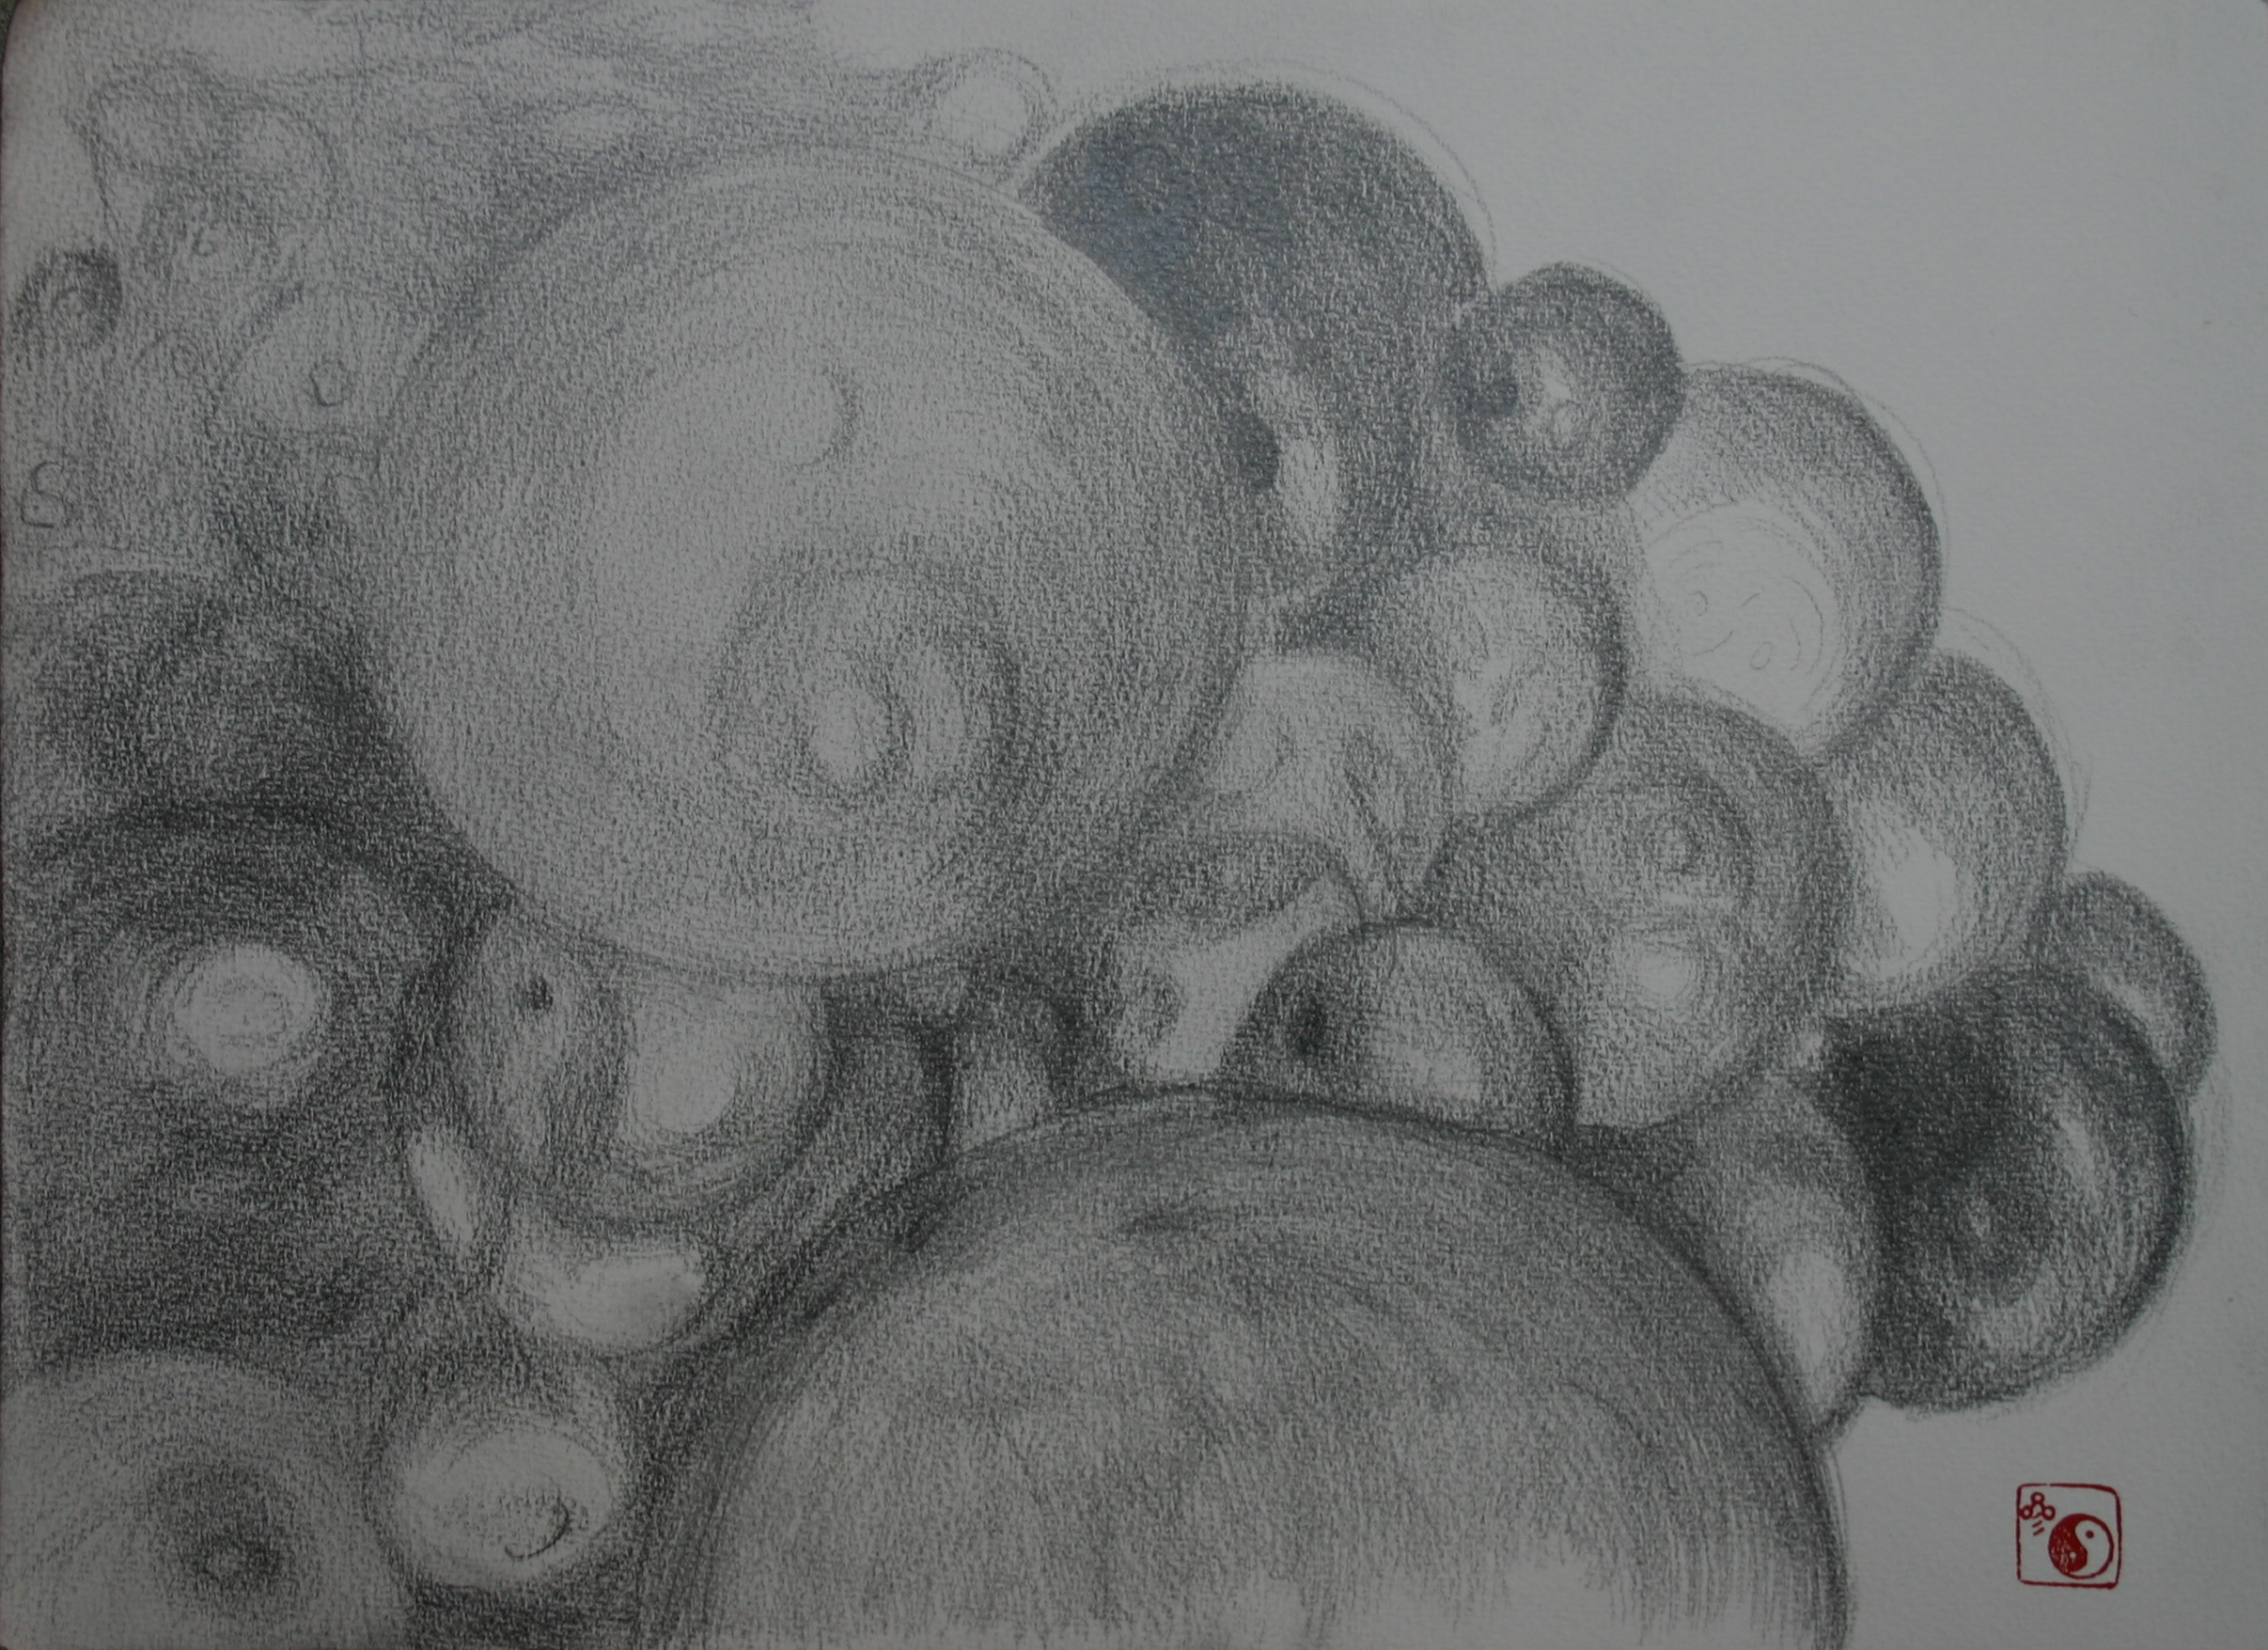 Spheritual (pencil)